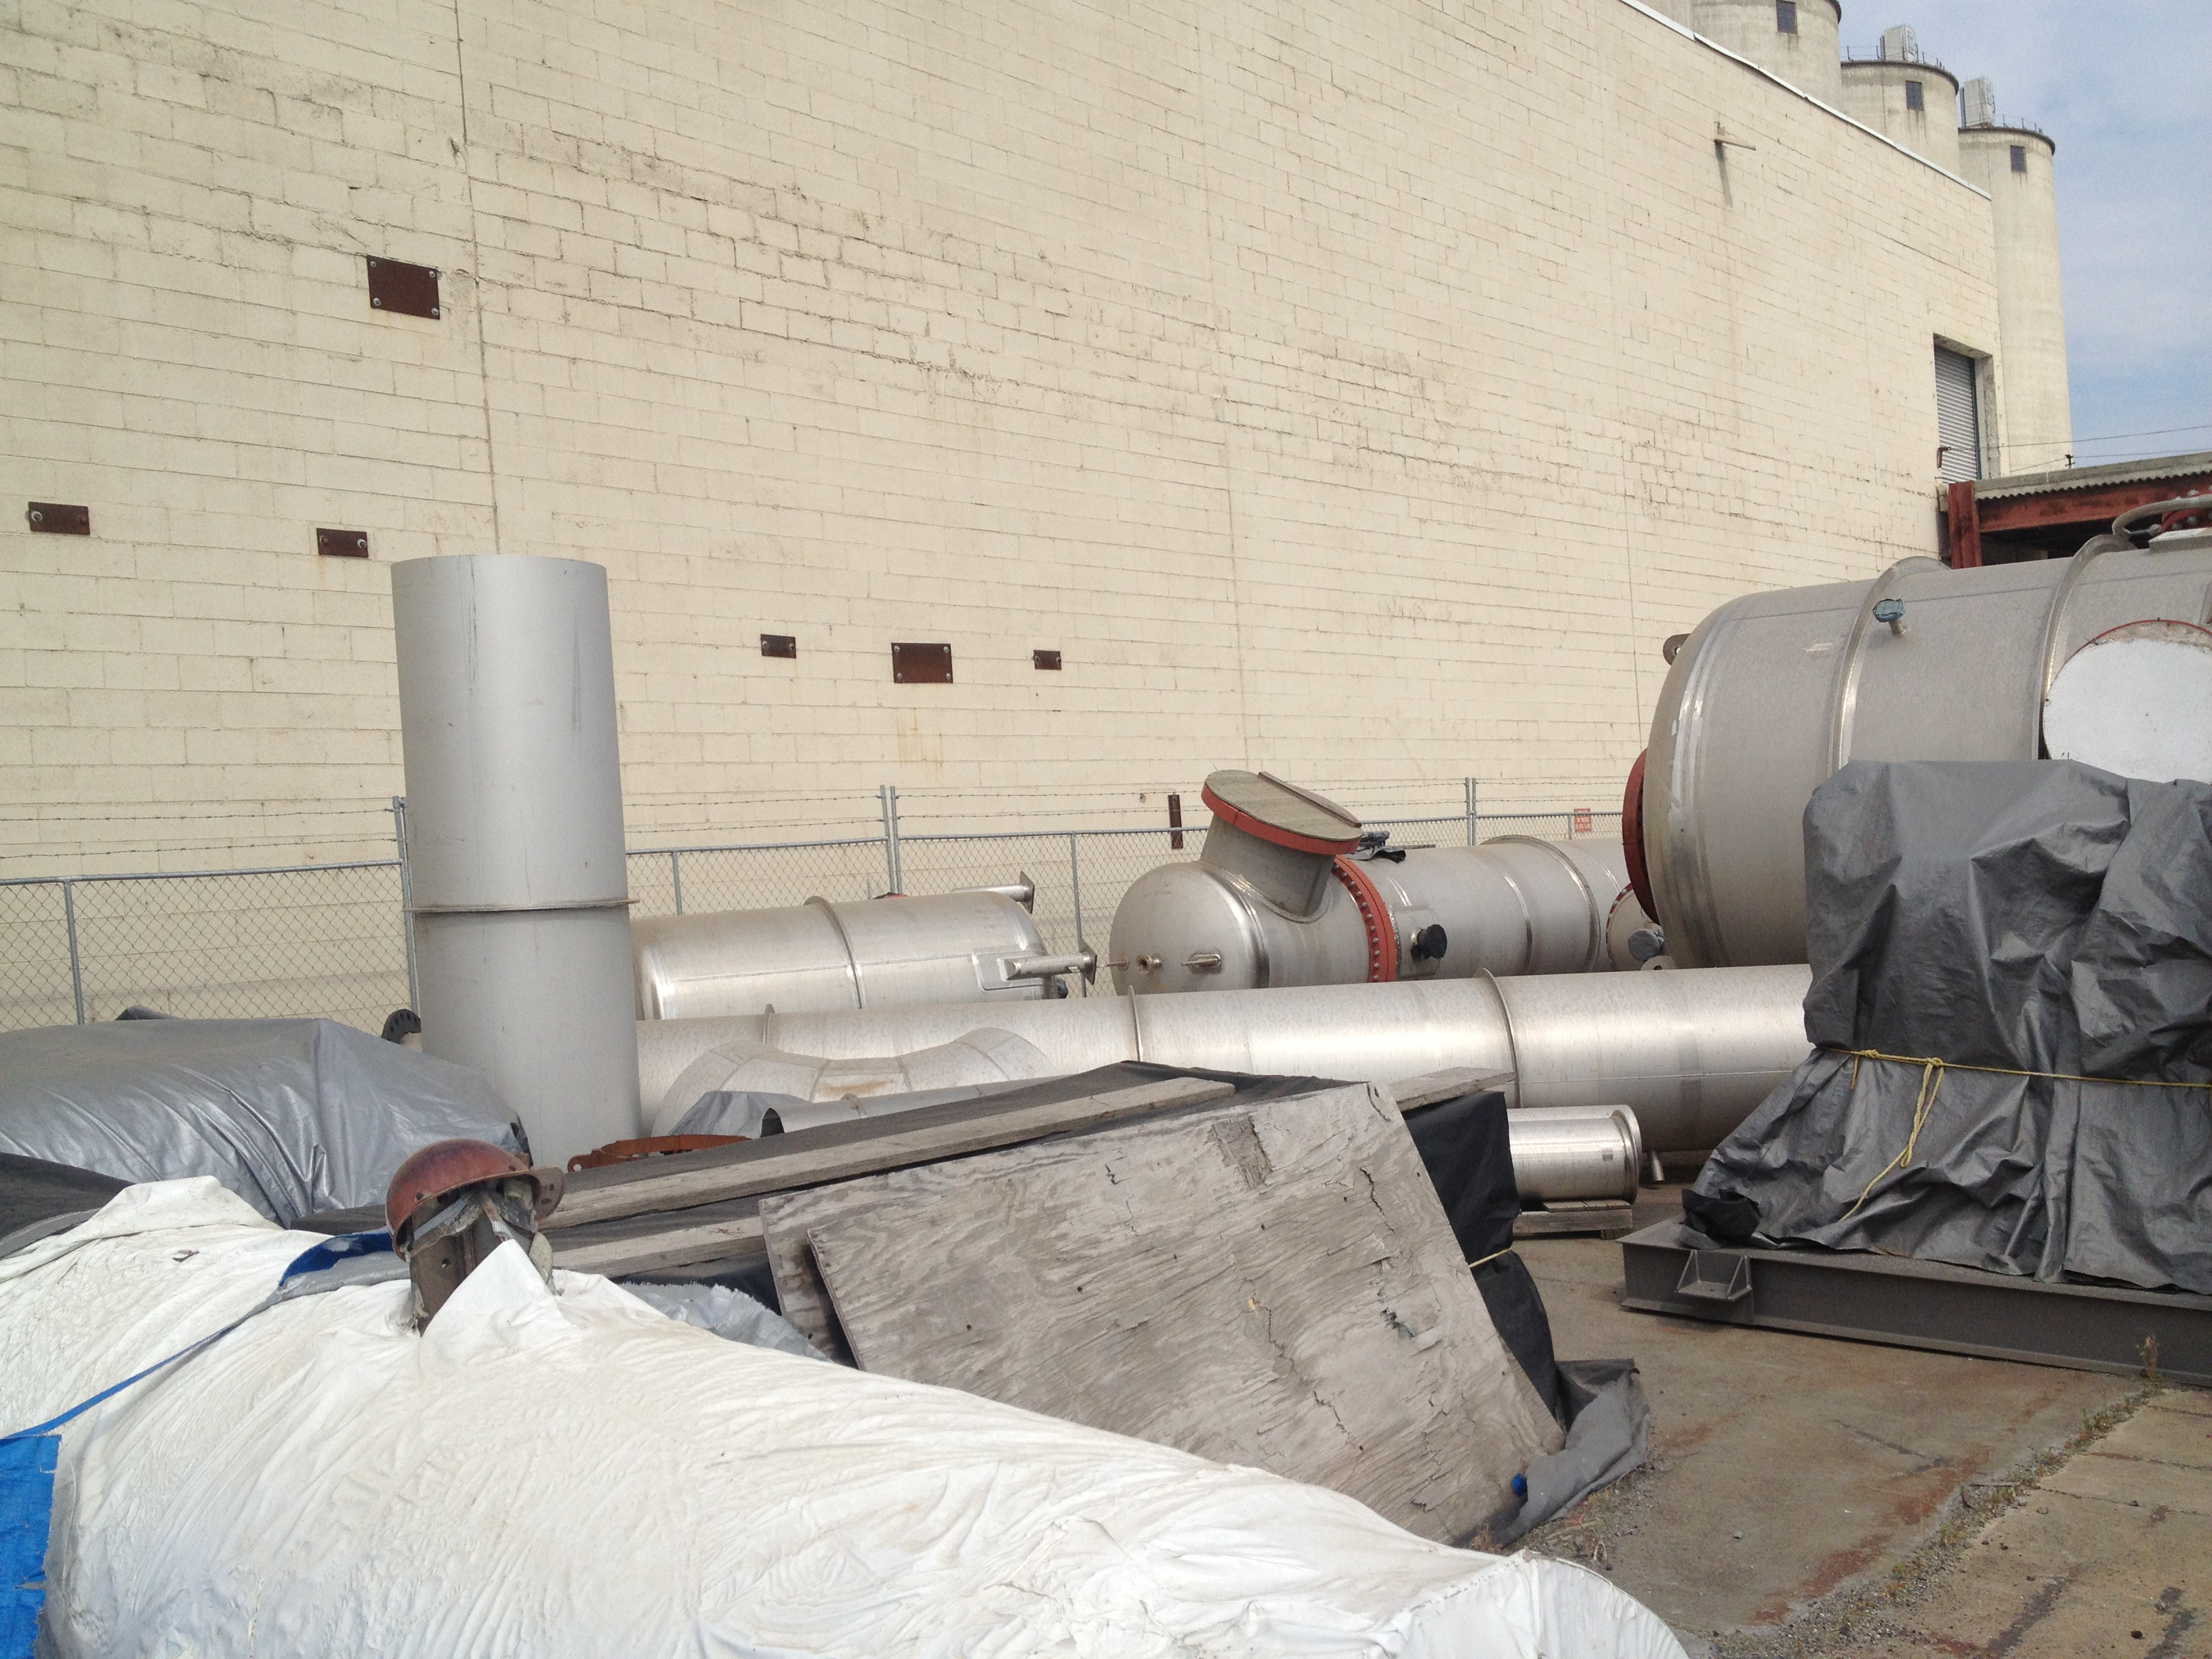 32696#/Hour, 2-Effect, 904L Stainless Steel Falling Film Evaporator